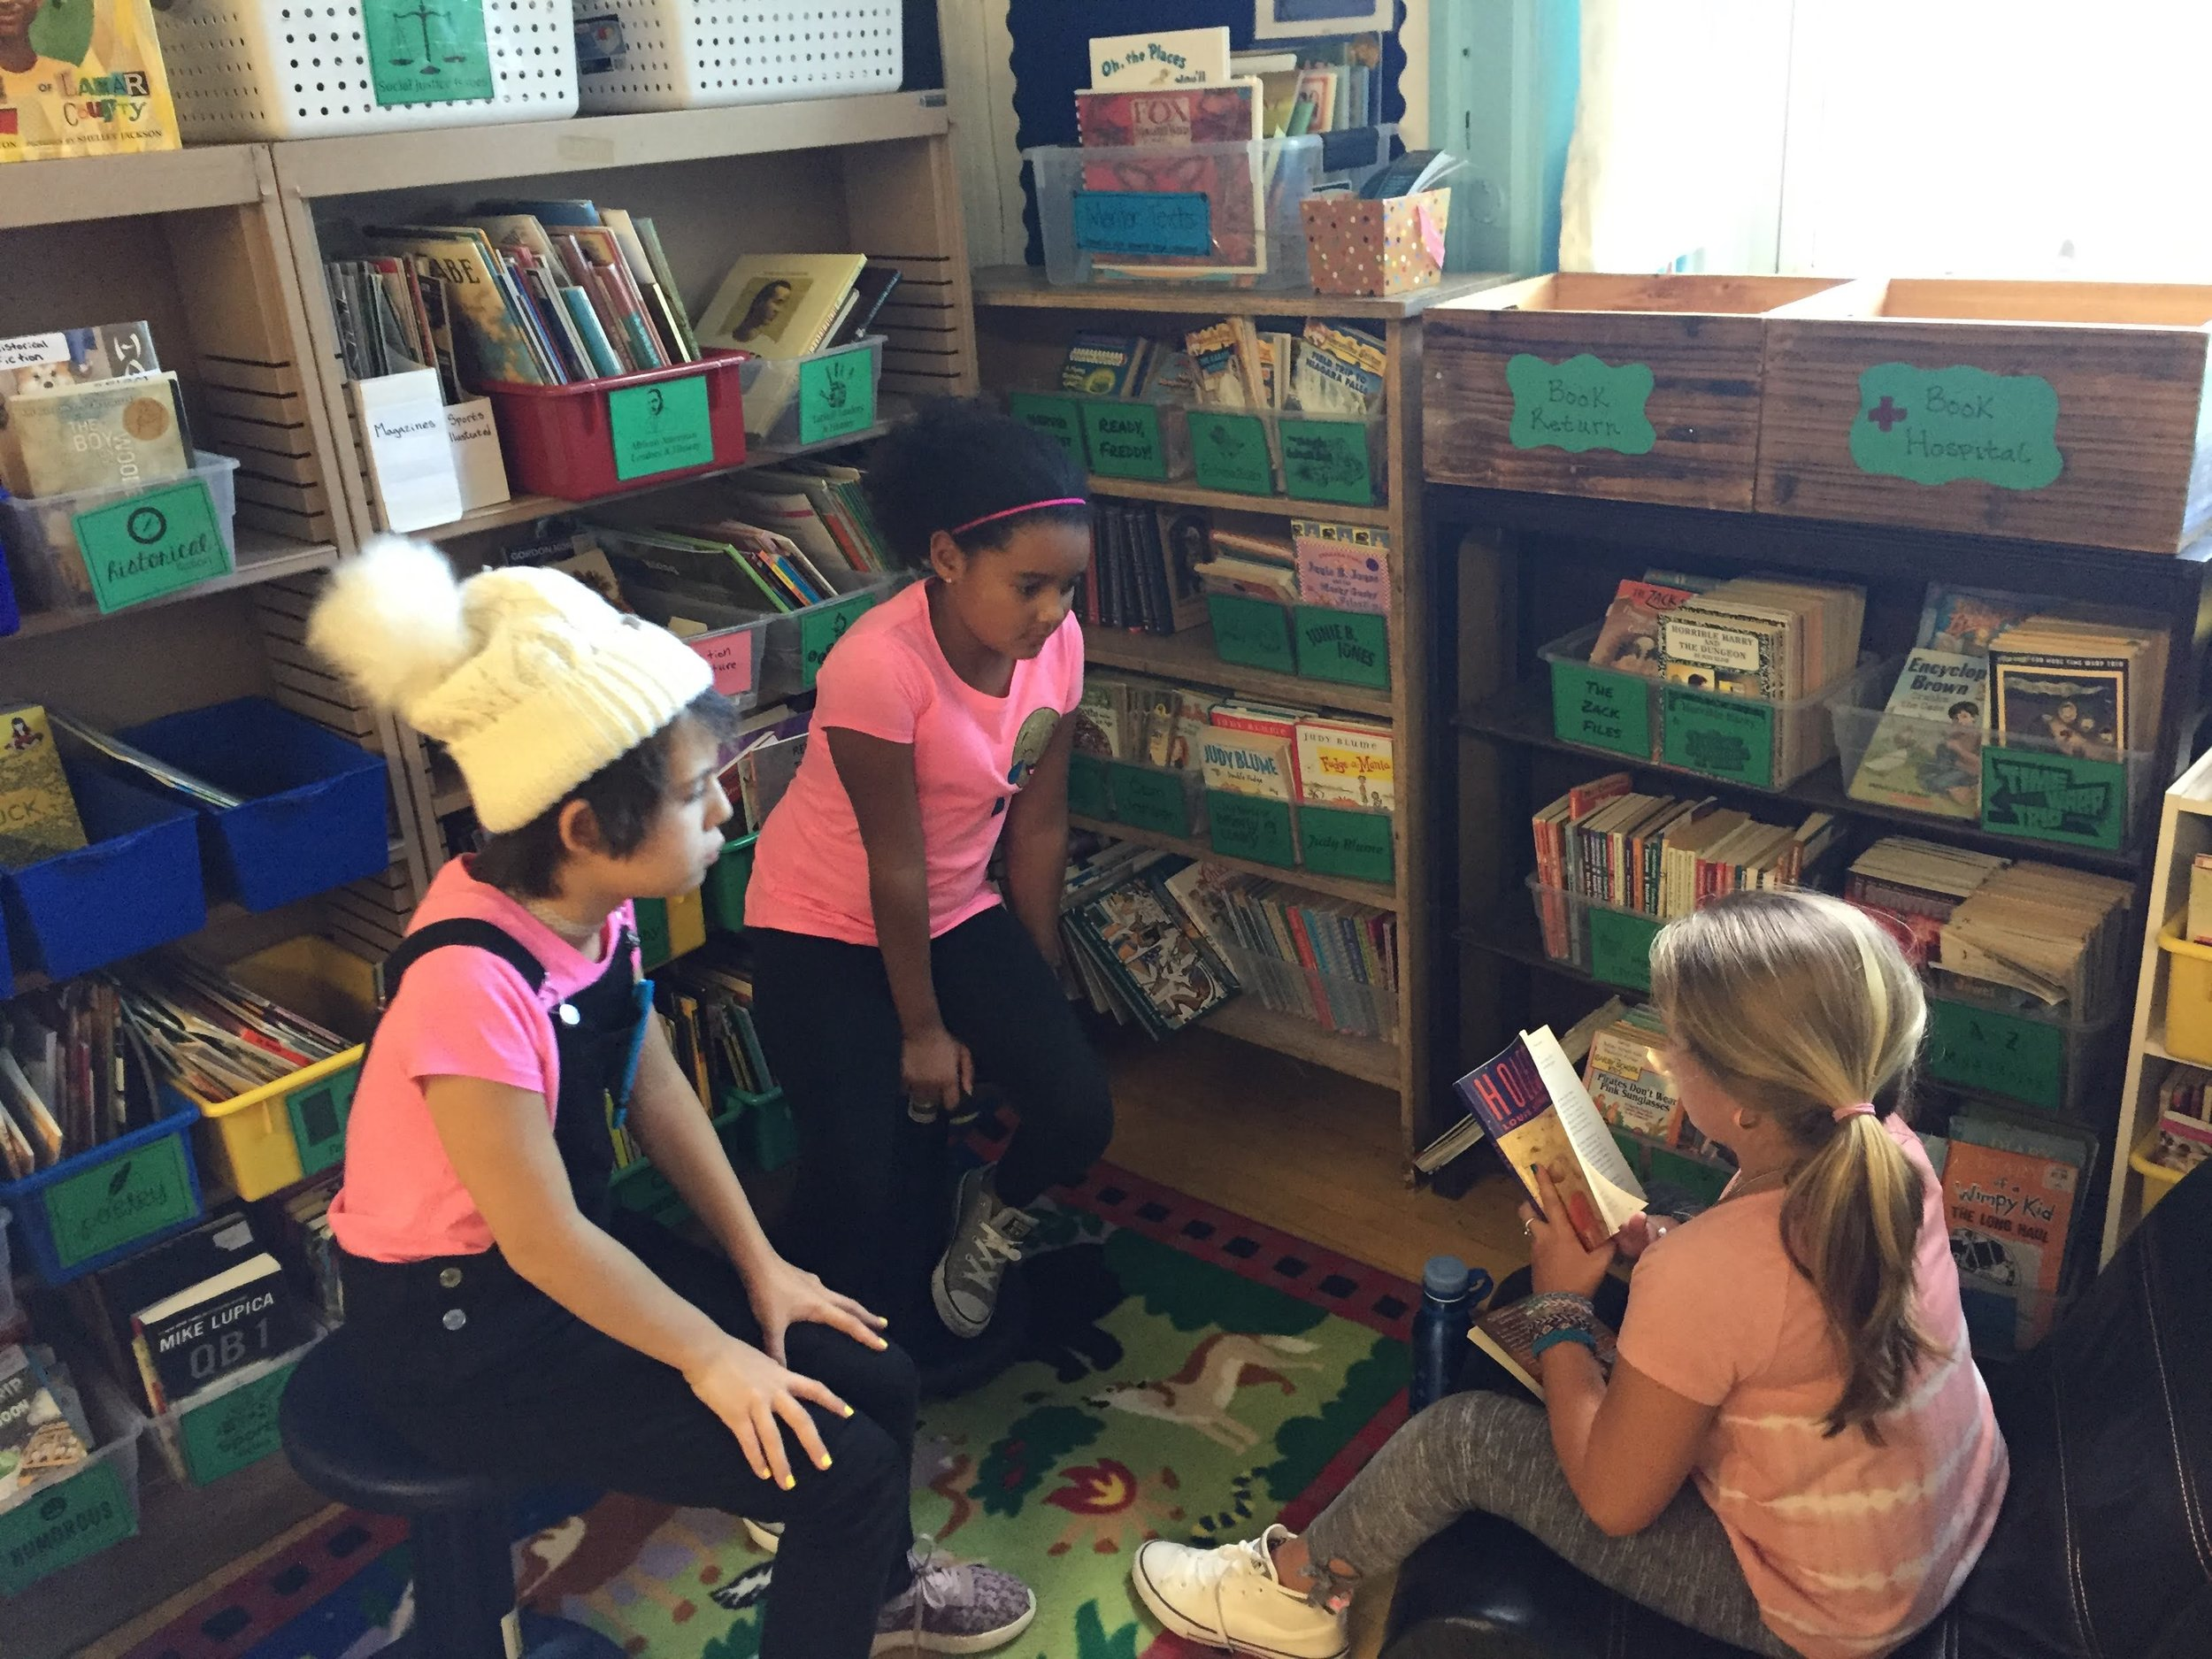 Students reading in the library.